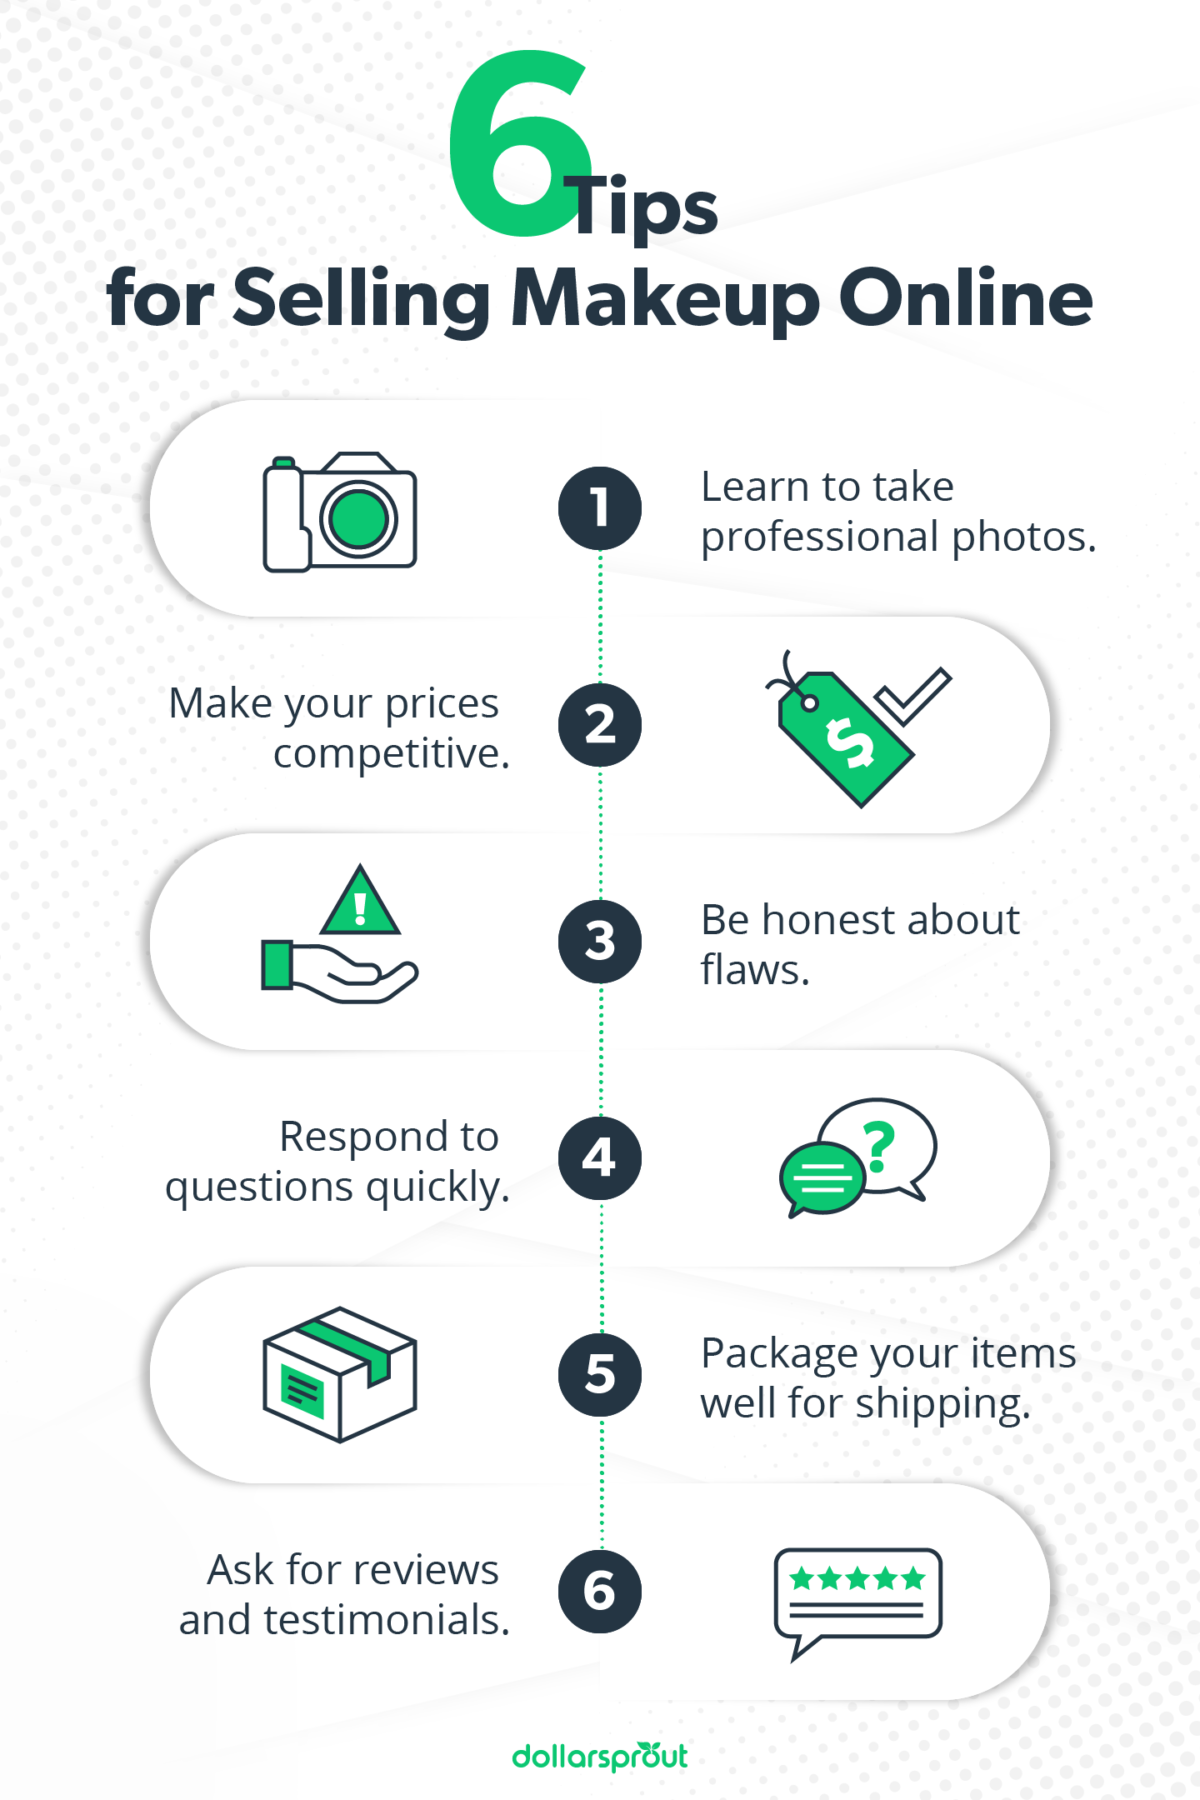 Tips for Selling Makeup Online